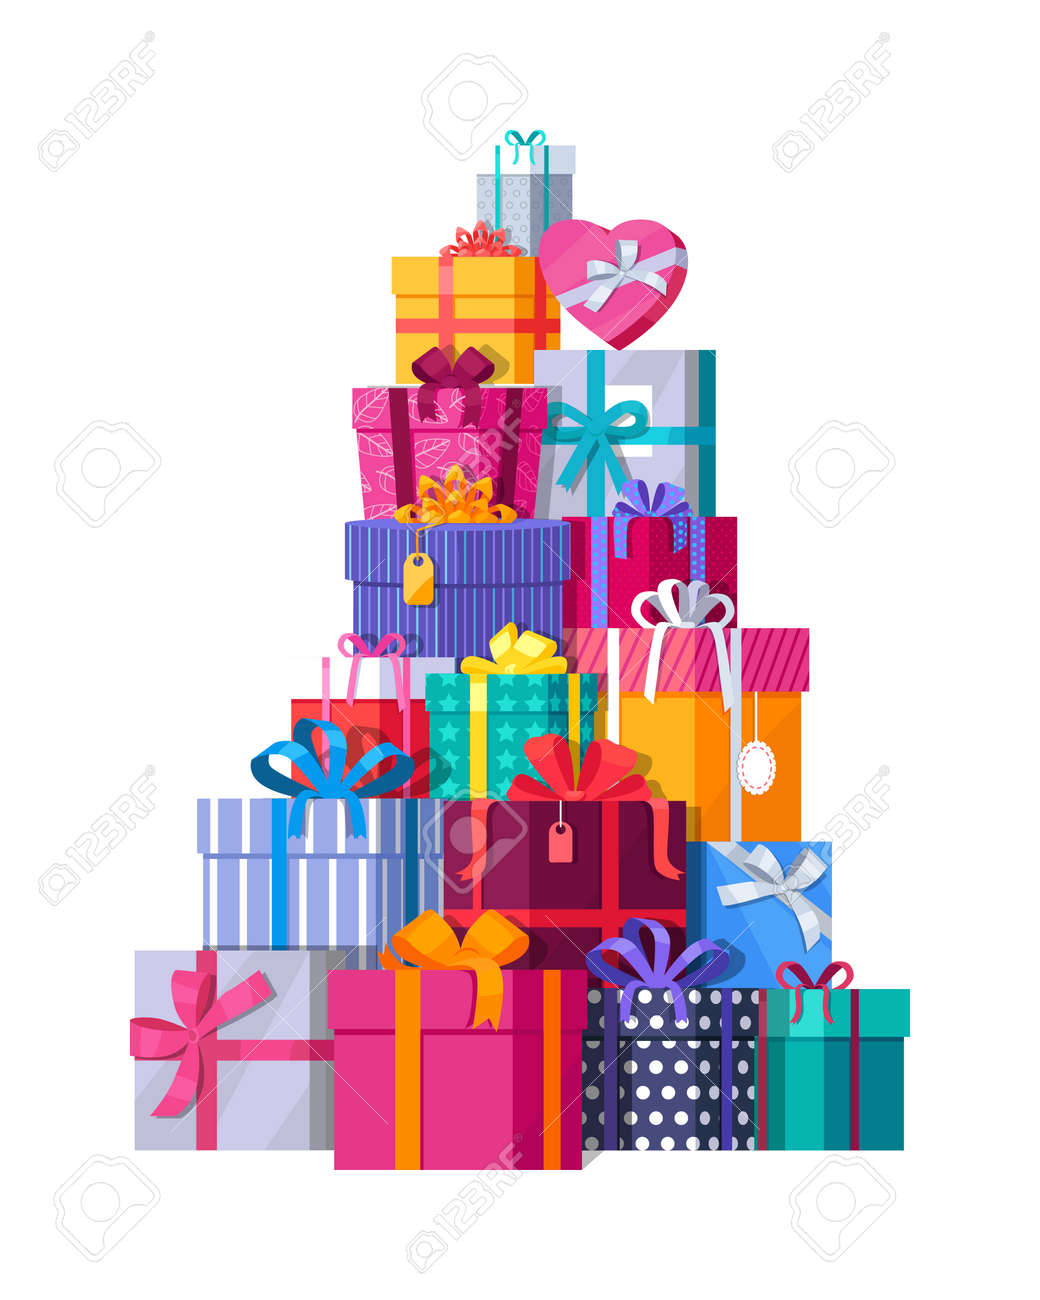 Mountain of colorful gift boxes on white background big stack of mountain of colorful gift boxes on white background big stack of christmas presents decorative negle Image collections